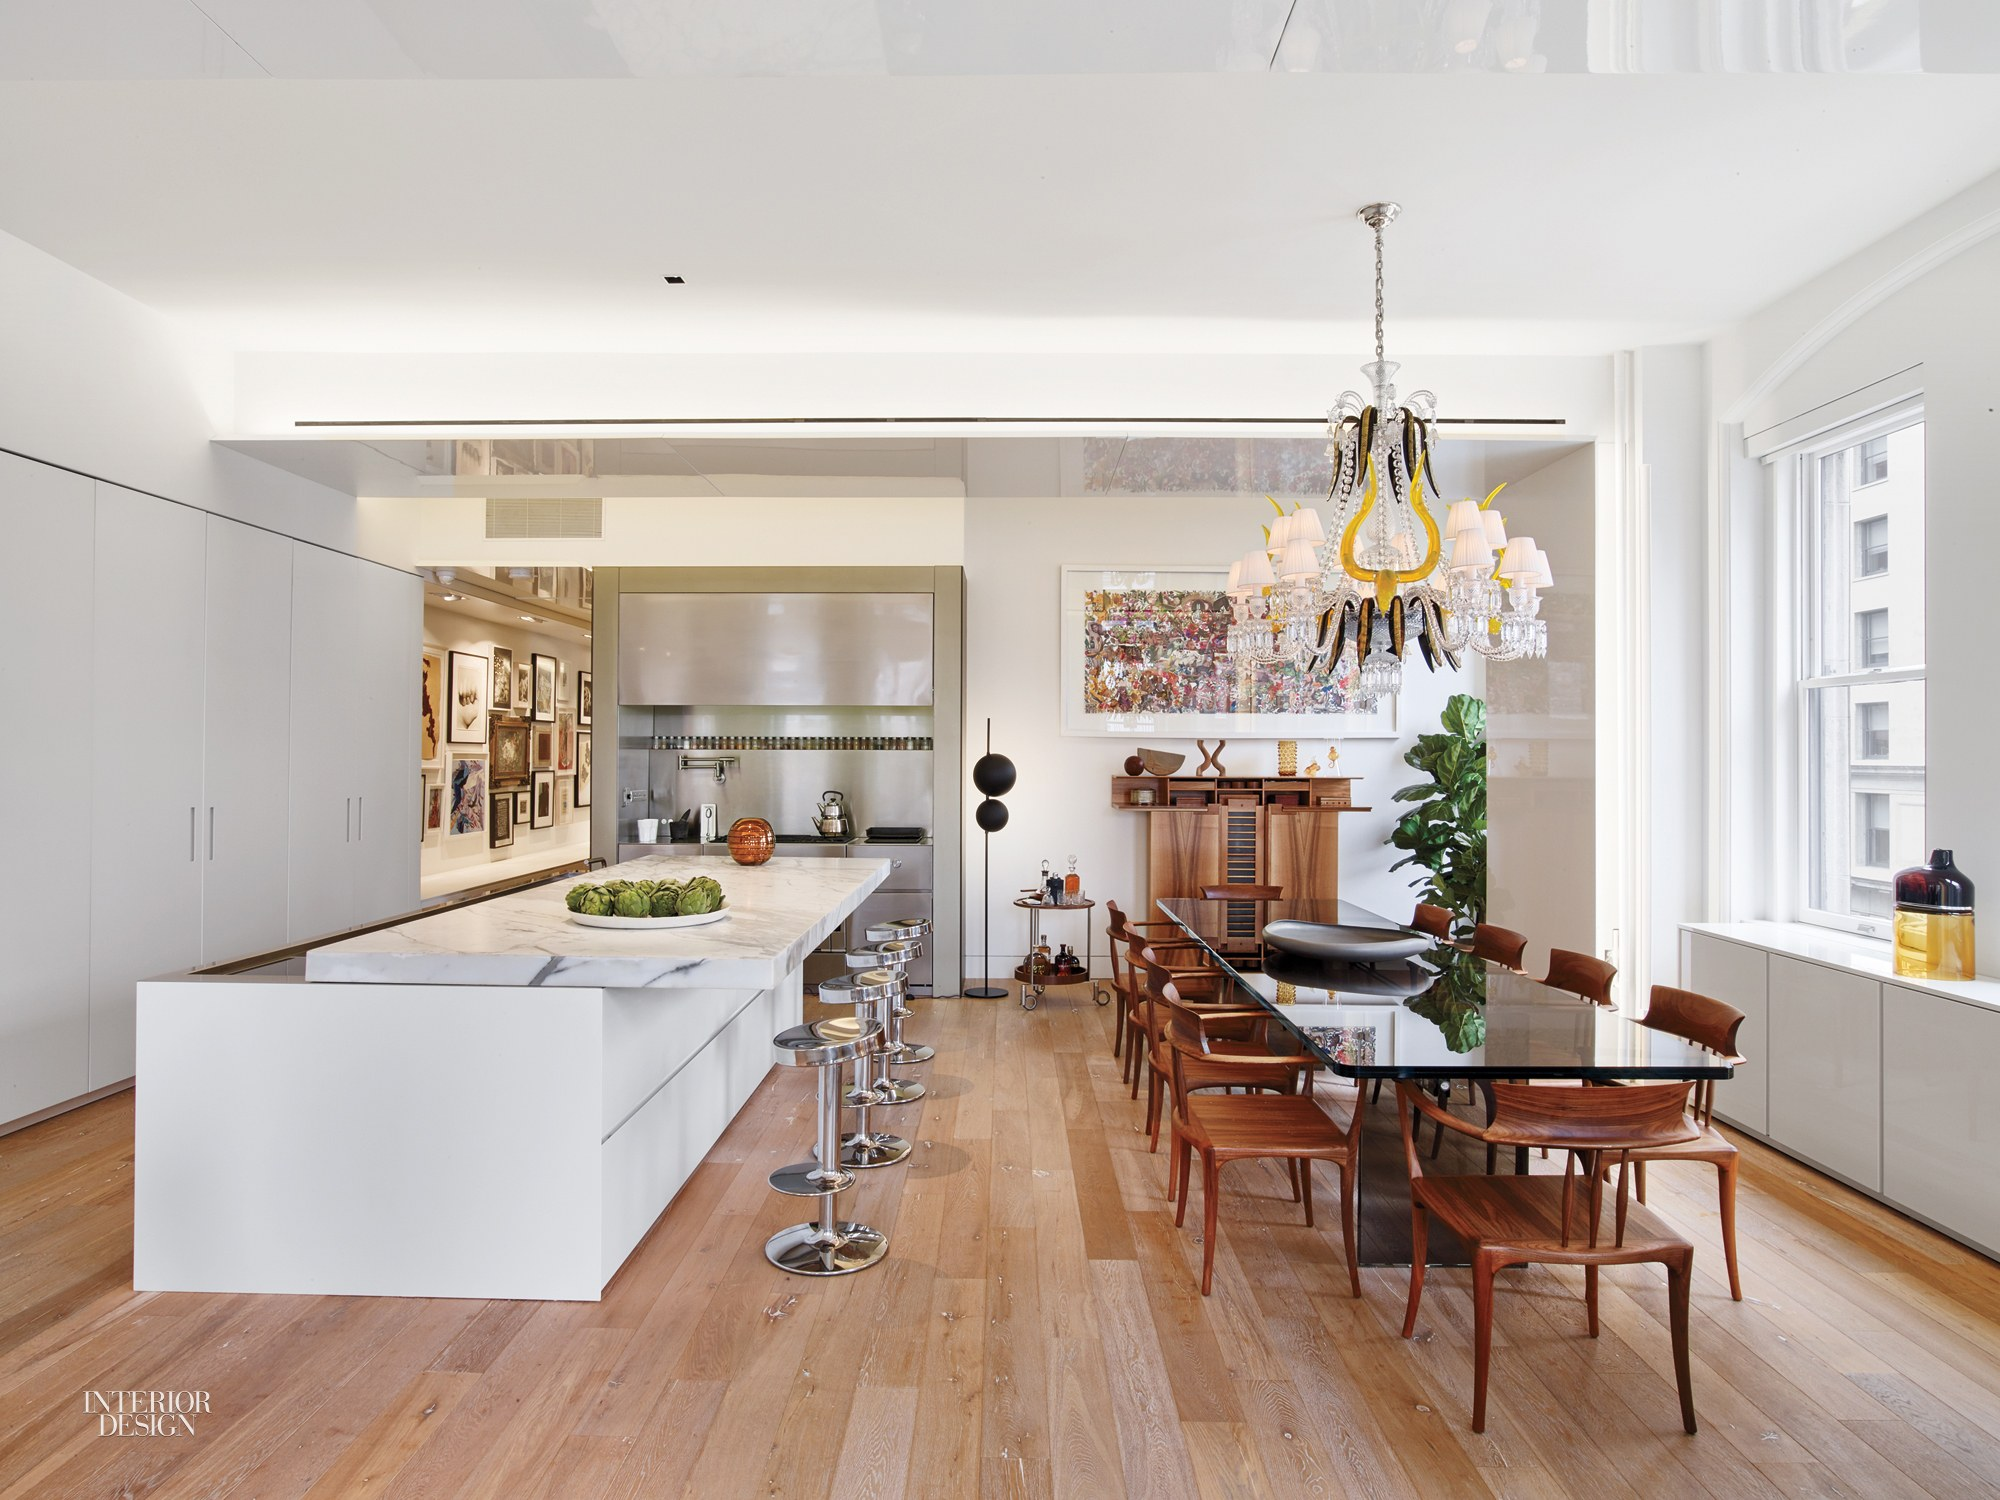 Awesome The Floor Is Distressed French Oak; The Kitchenu0027s Marble Counter Is Only A  Half Inch Thick, But Its Mitered Edge Makes It Look Massive.